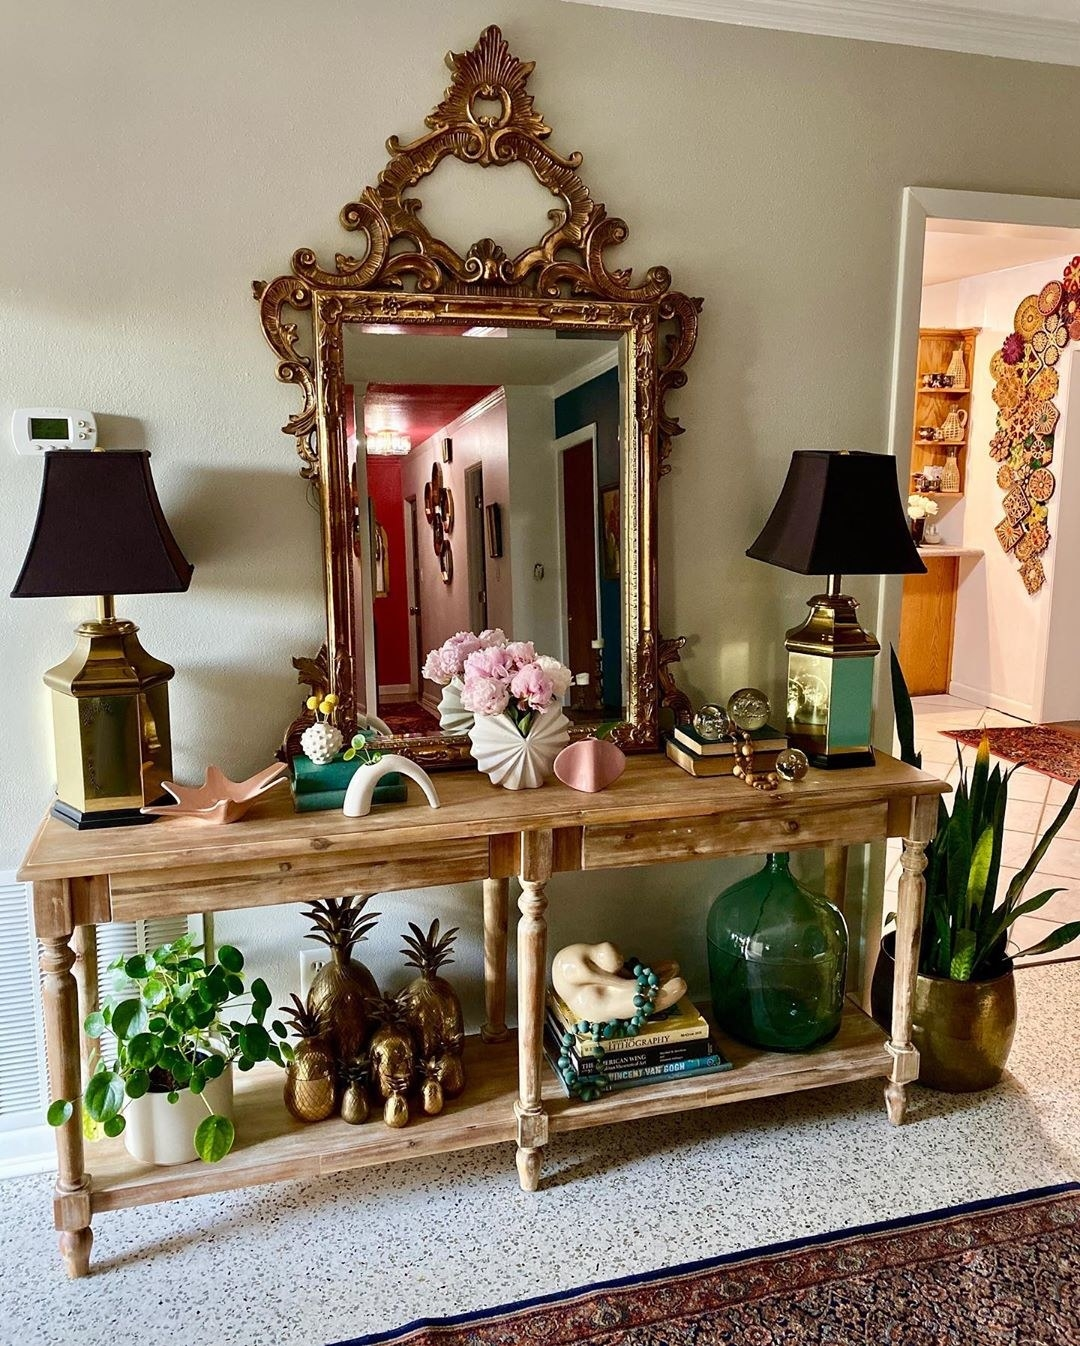 A large, ornate mirror sits on a console table as a focal point